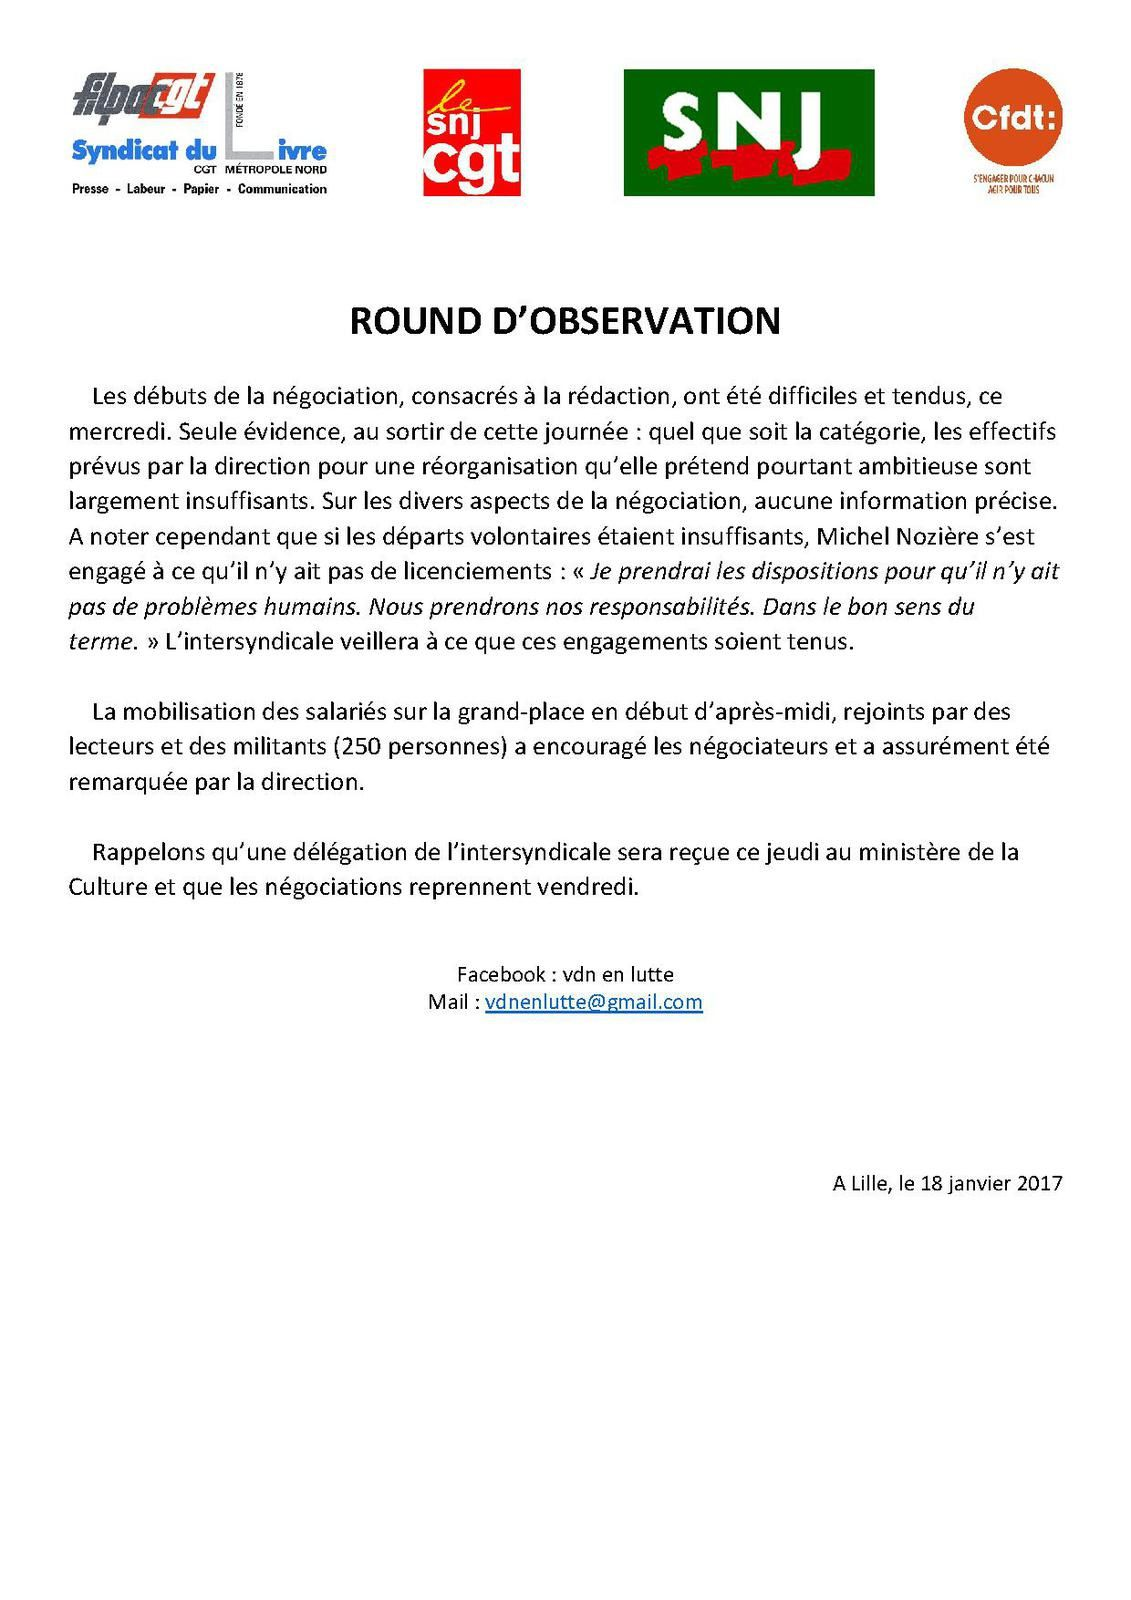 ROUND D'OBSERVATION (Intersyndicale VDN)